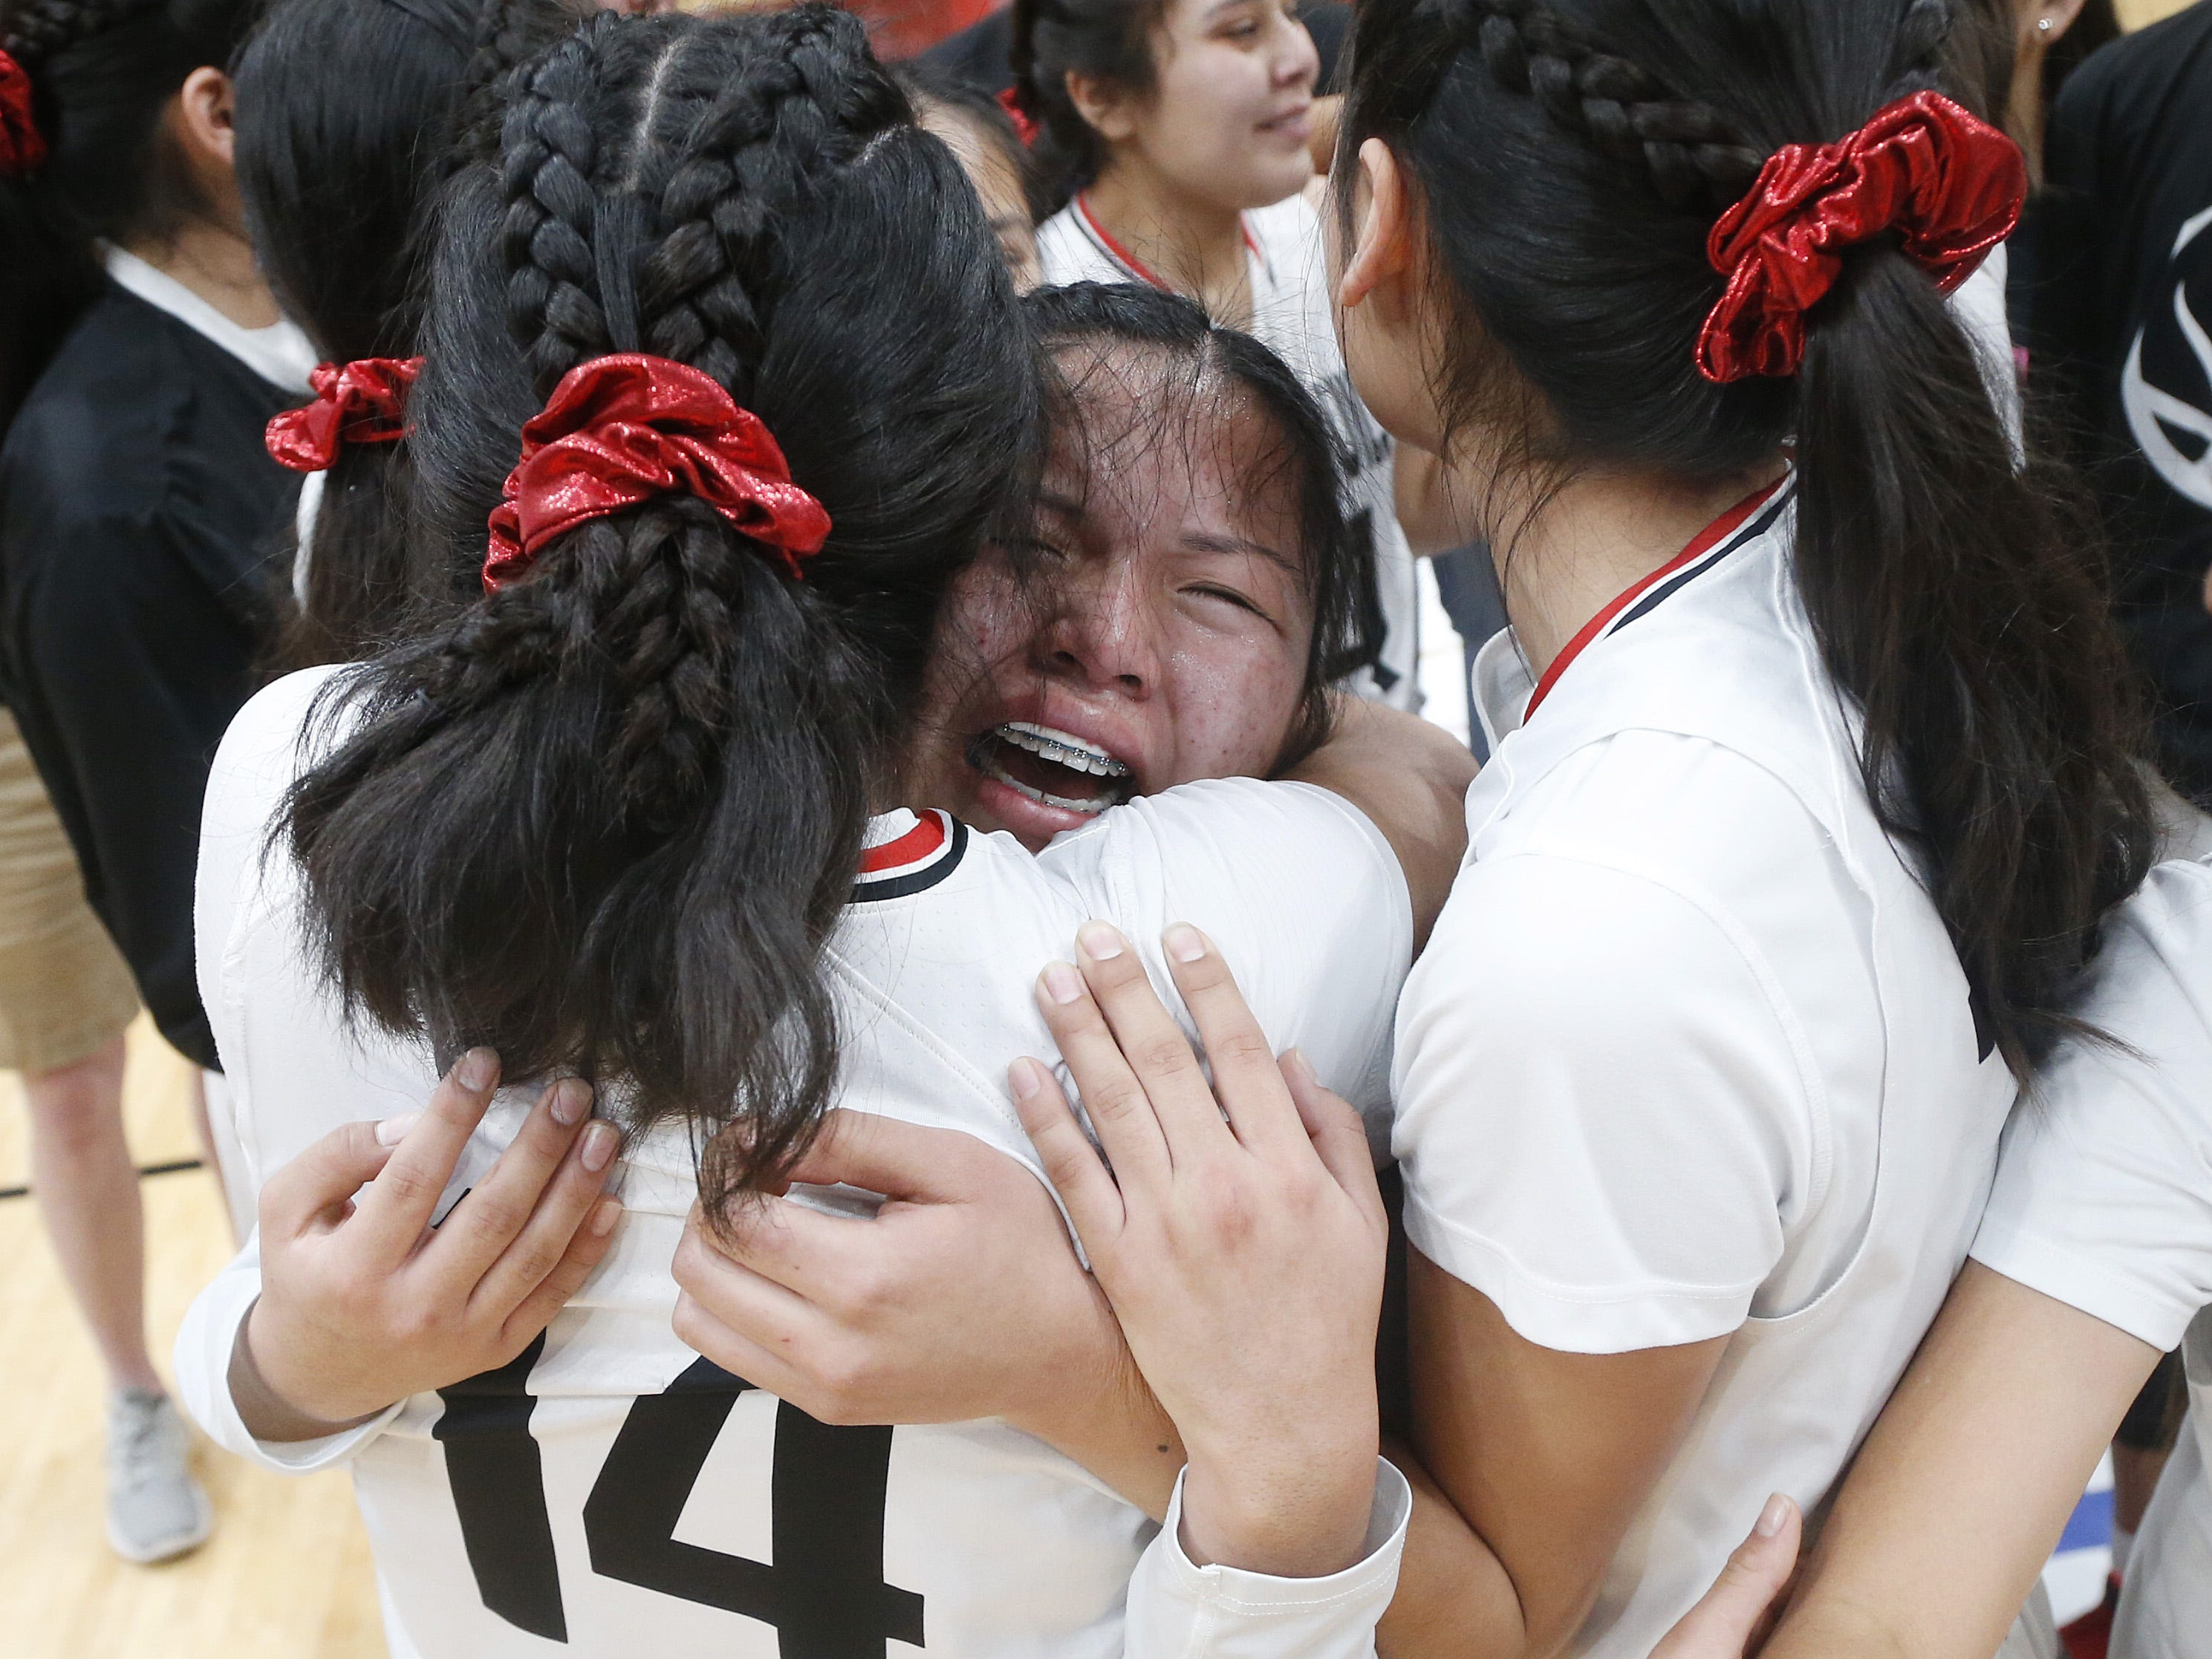 Page's Mikala Benally (10) hugs her teammate Diana Secody (14) after winning the 3A girls basketball state championship game over Holbrook at Gila River Arena in Glendale, Ariz. on February 23, 2019.